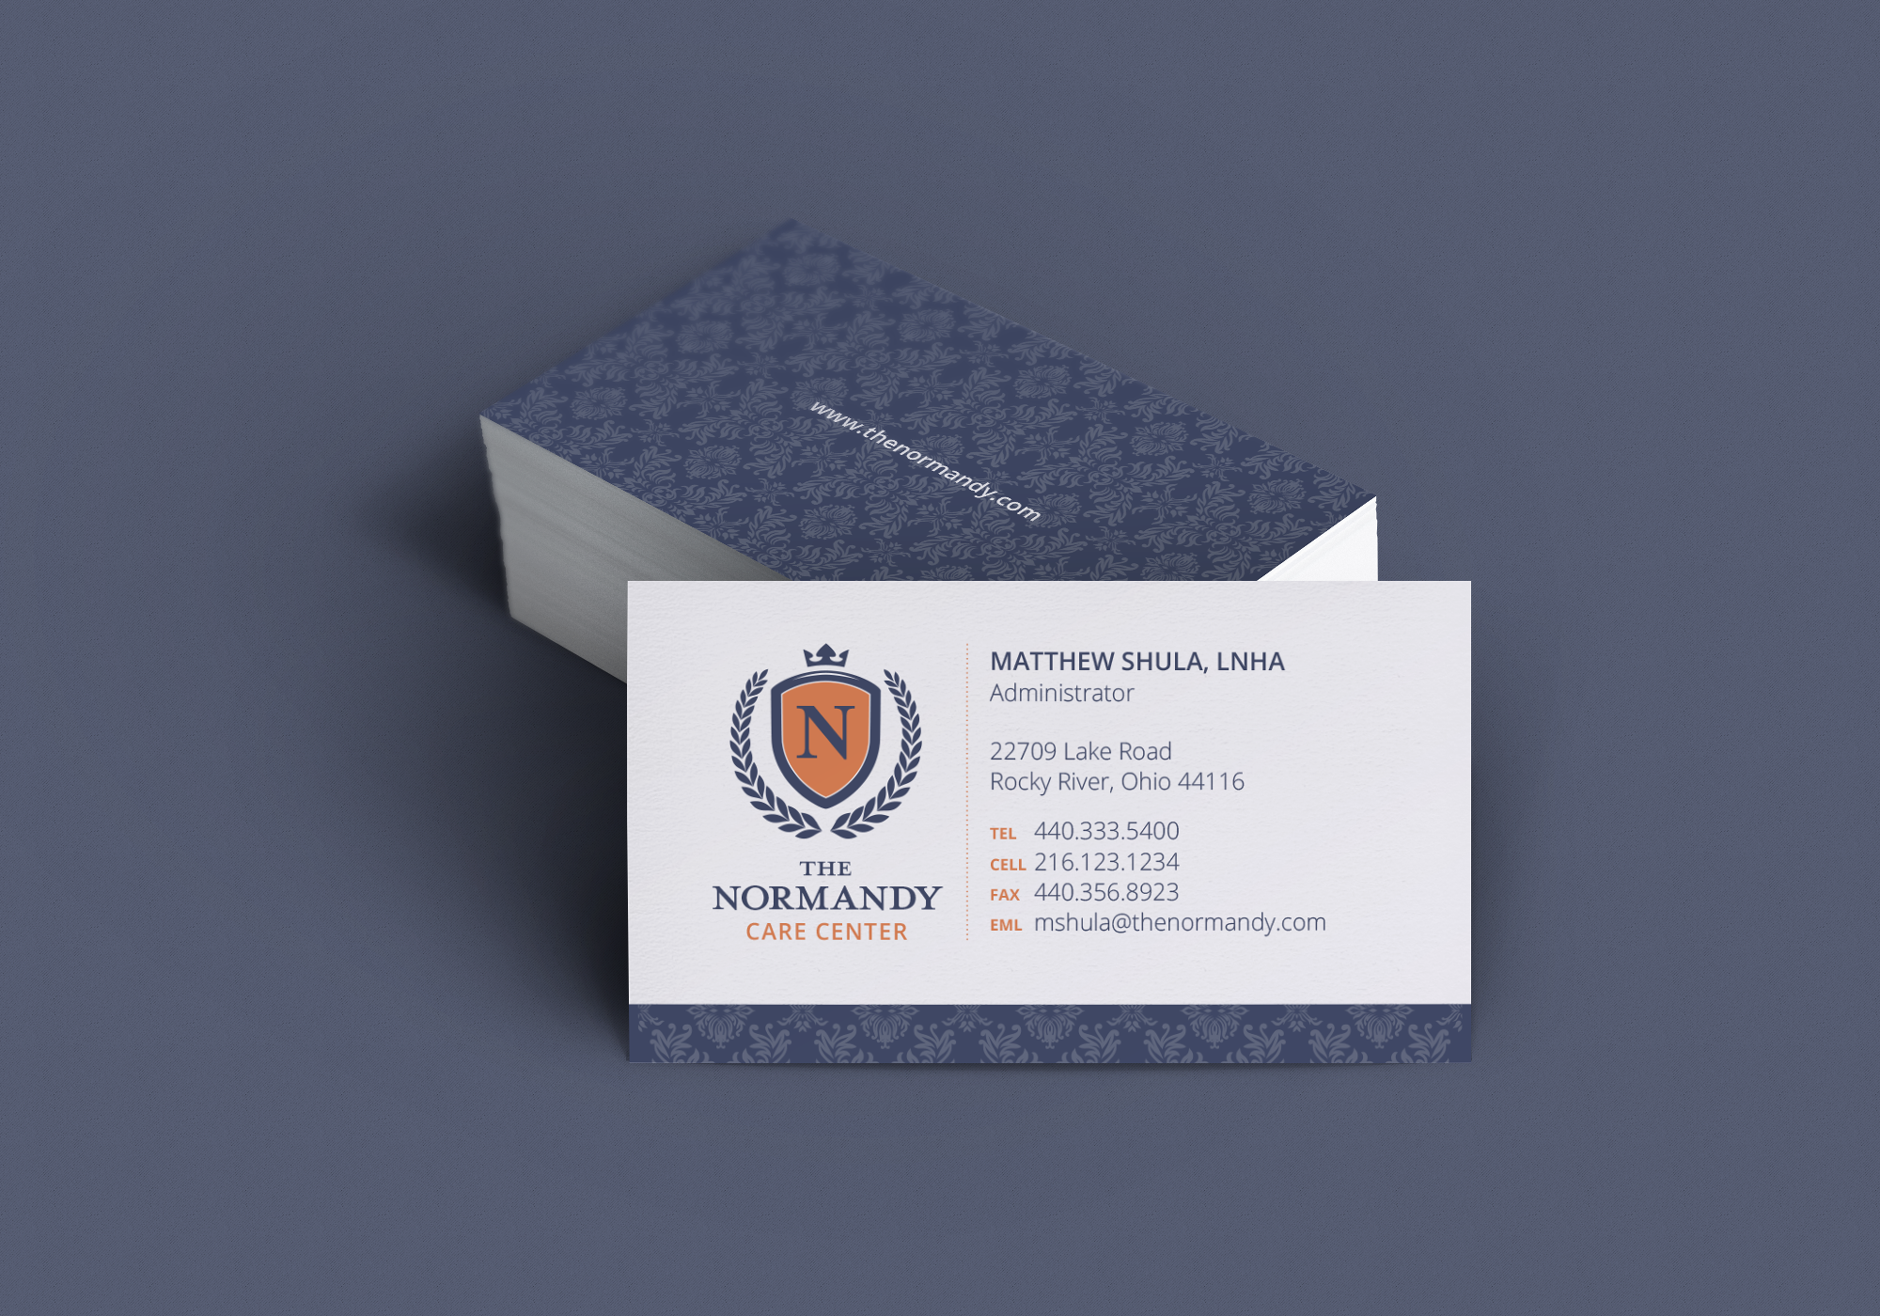 The Normandy Care Center Business Cards | Rebranding Agency